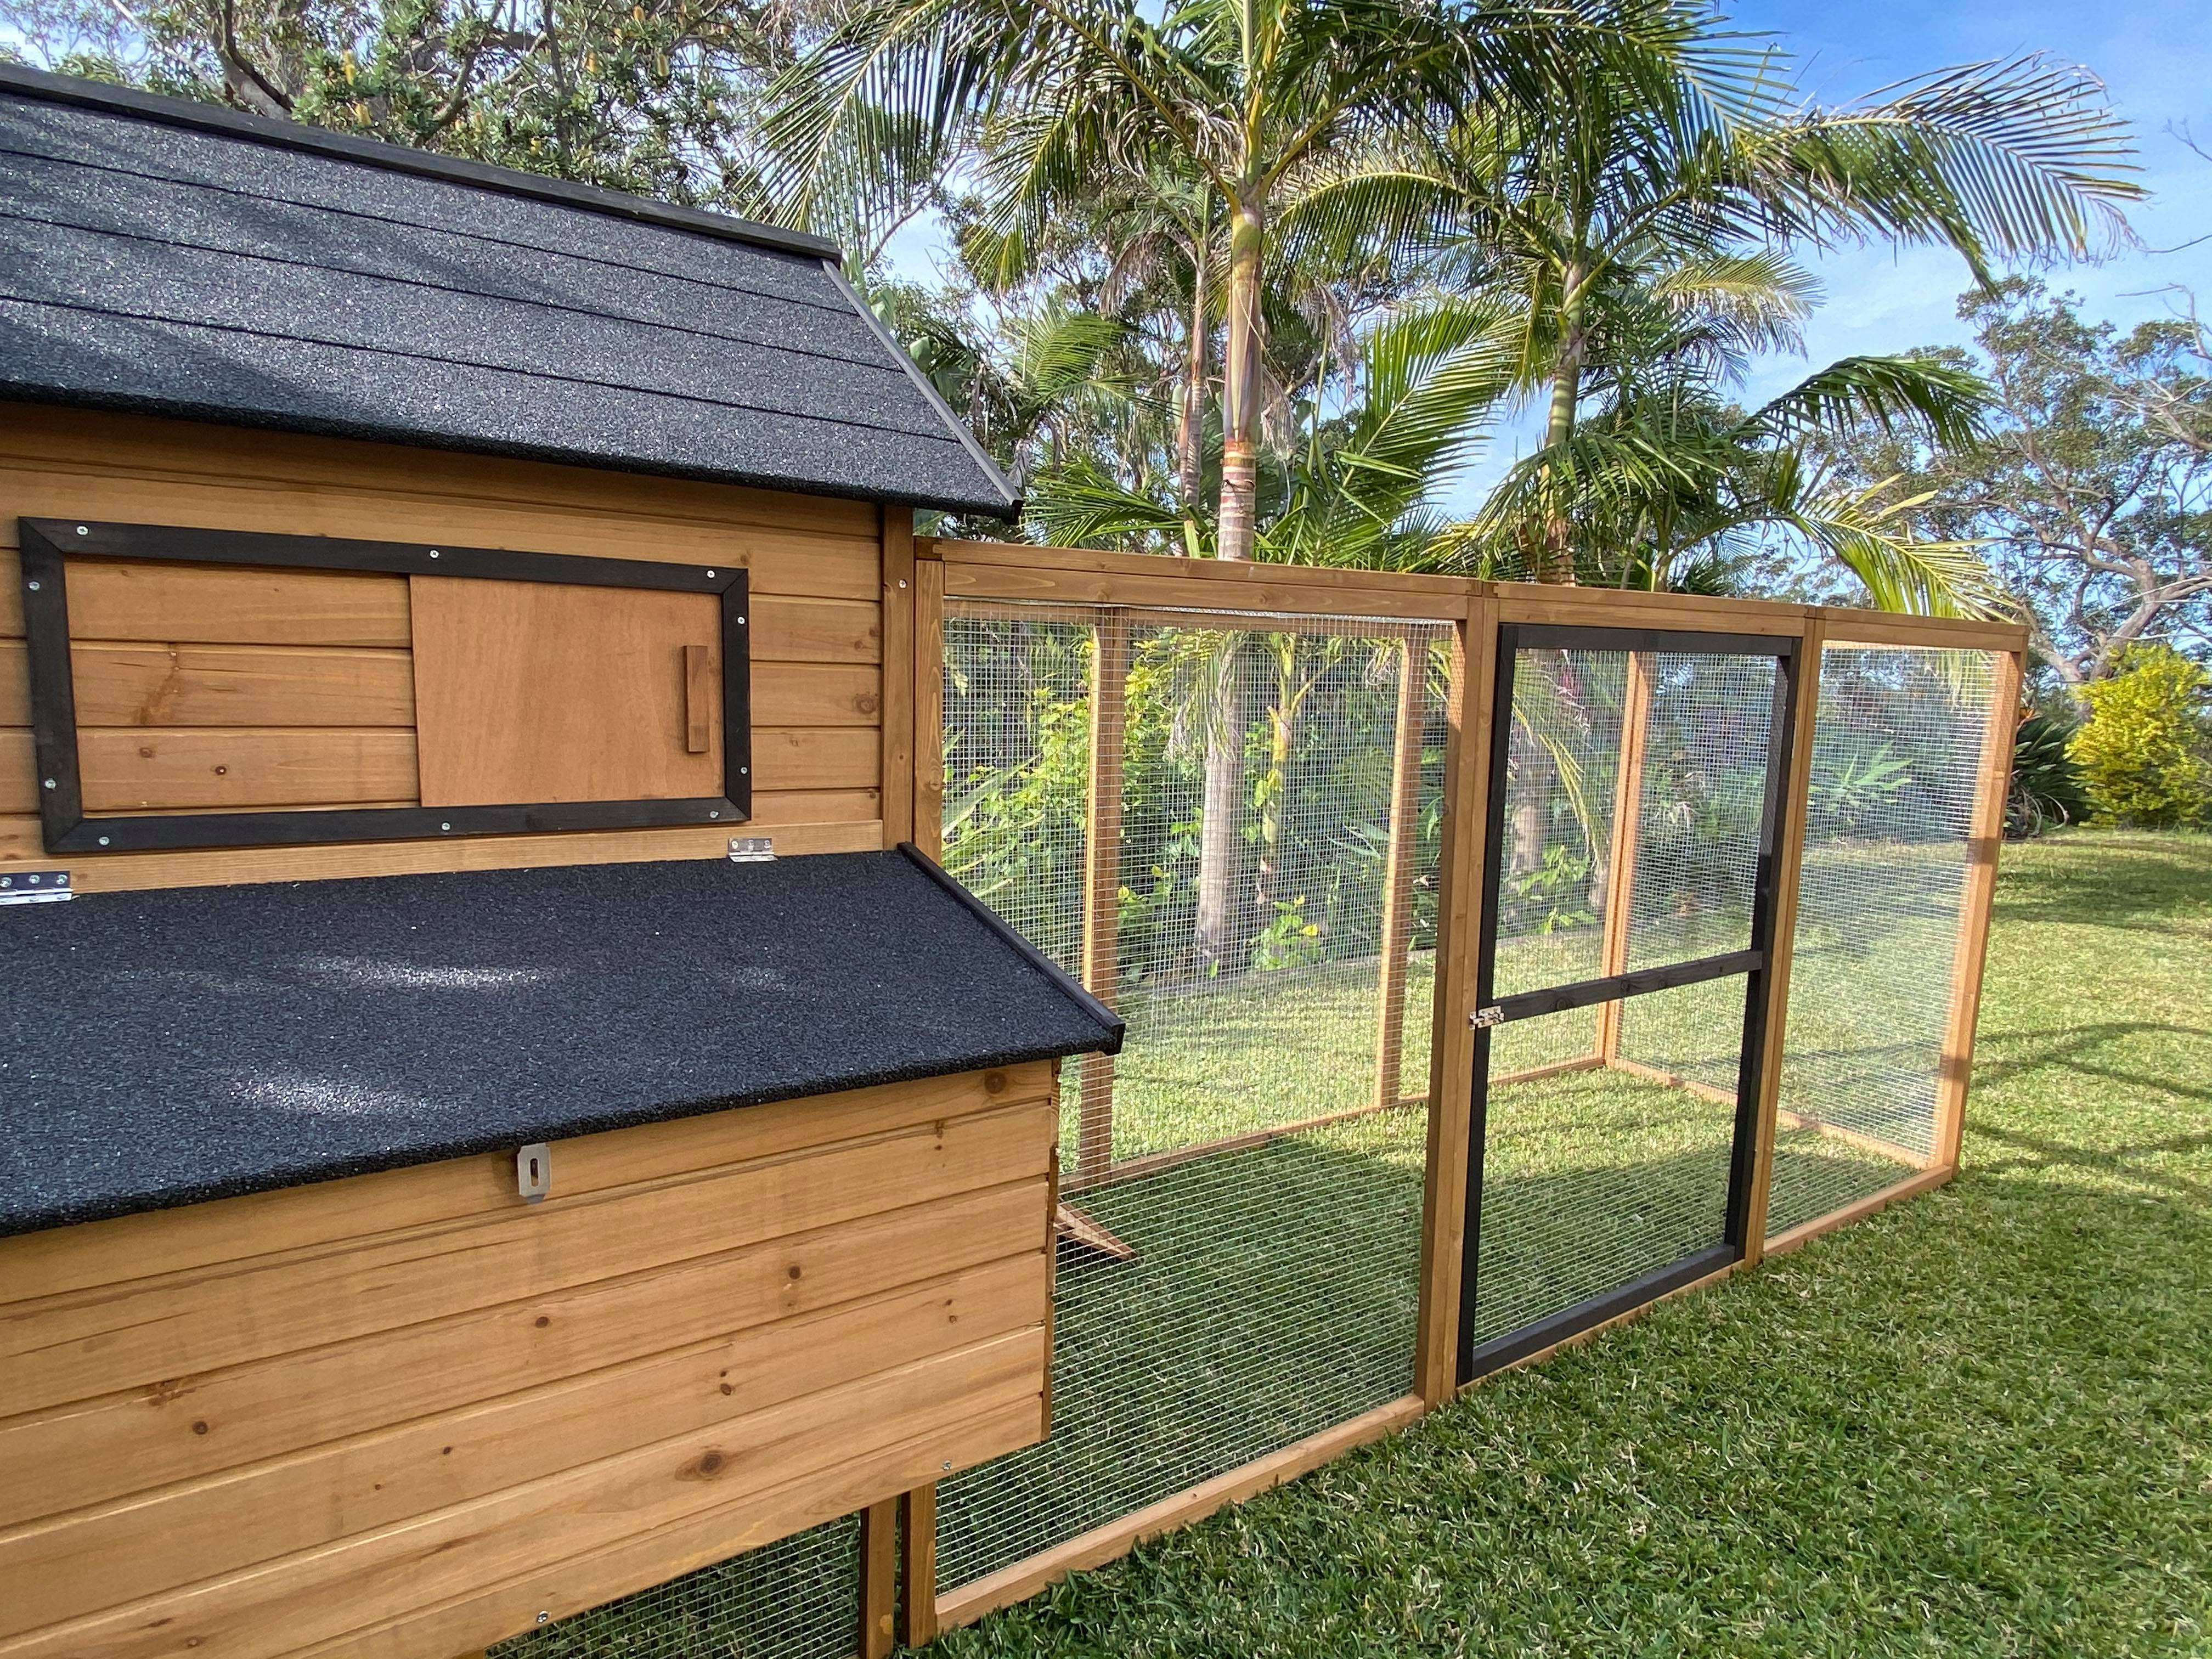 Cabana Chicken Coop with Run gallery image